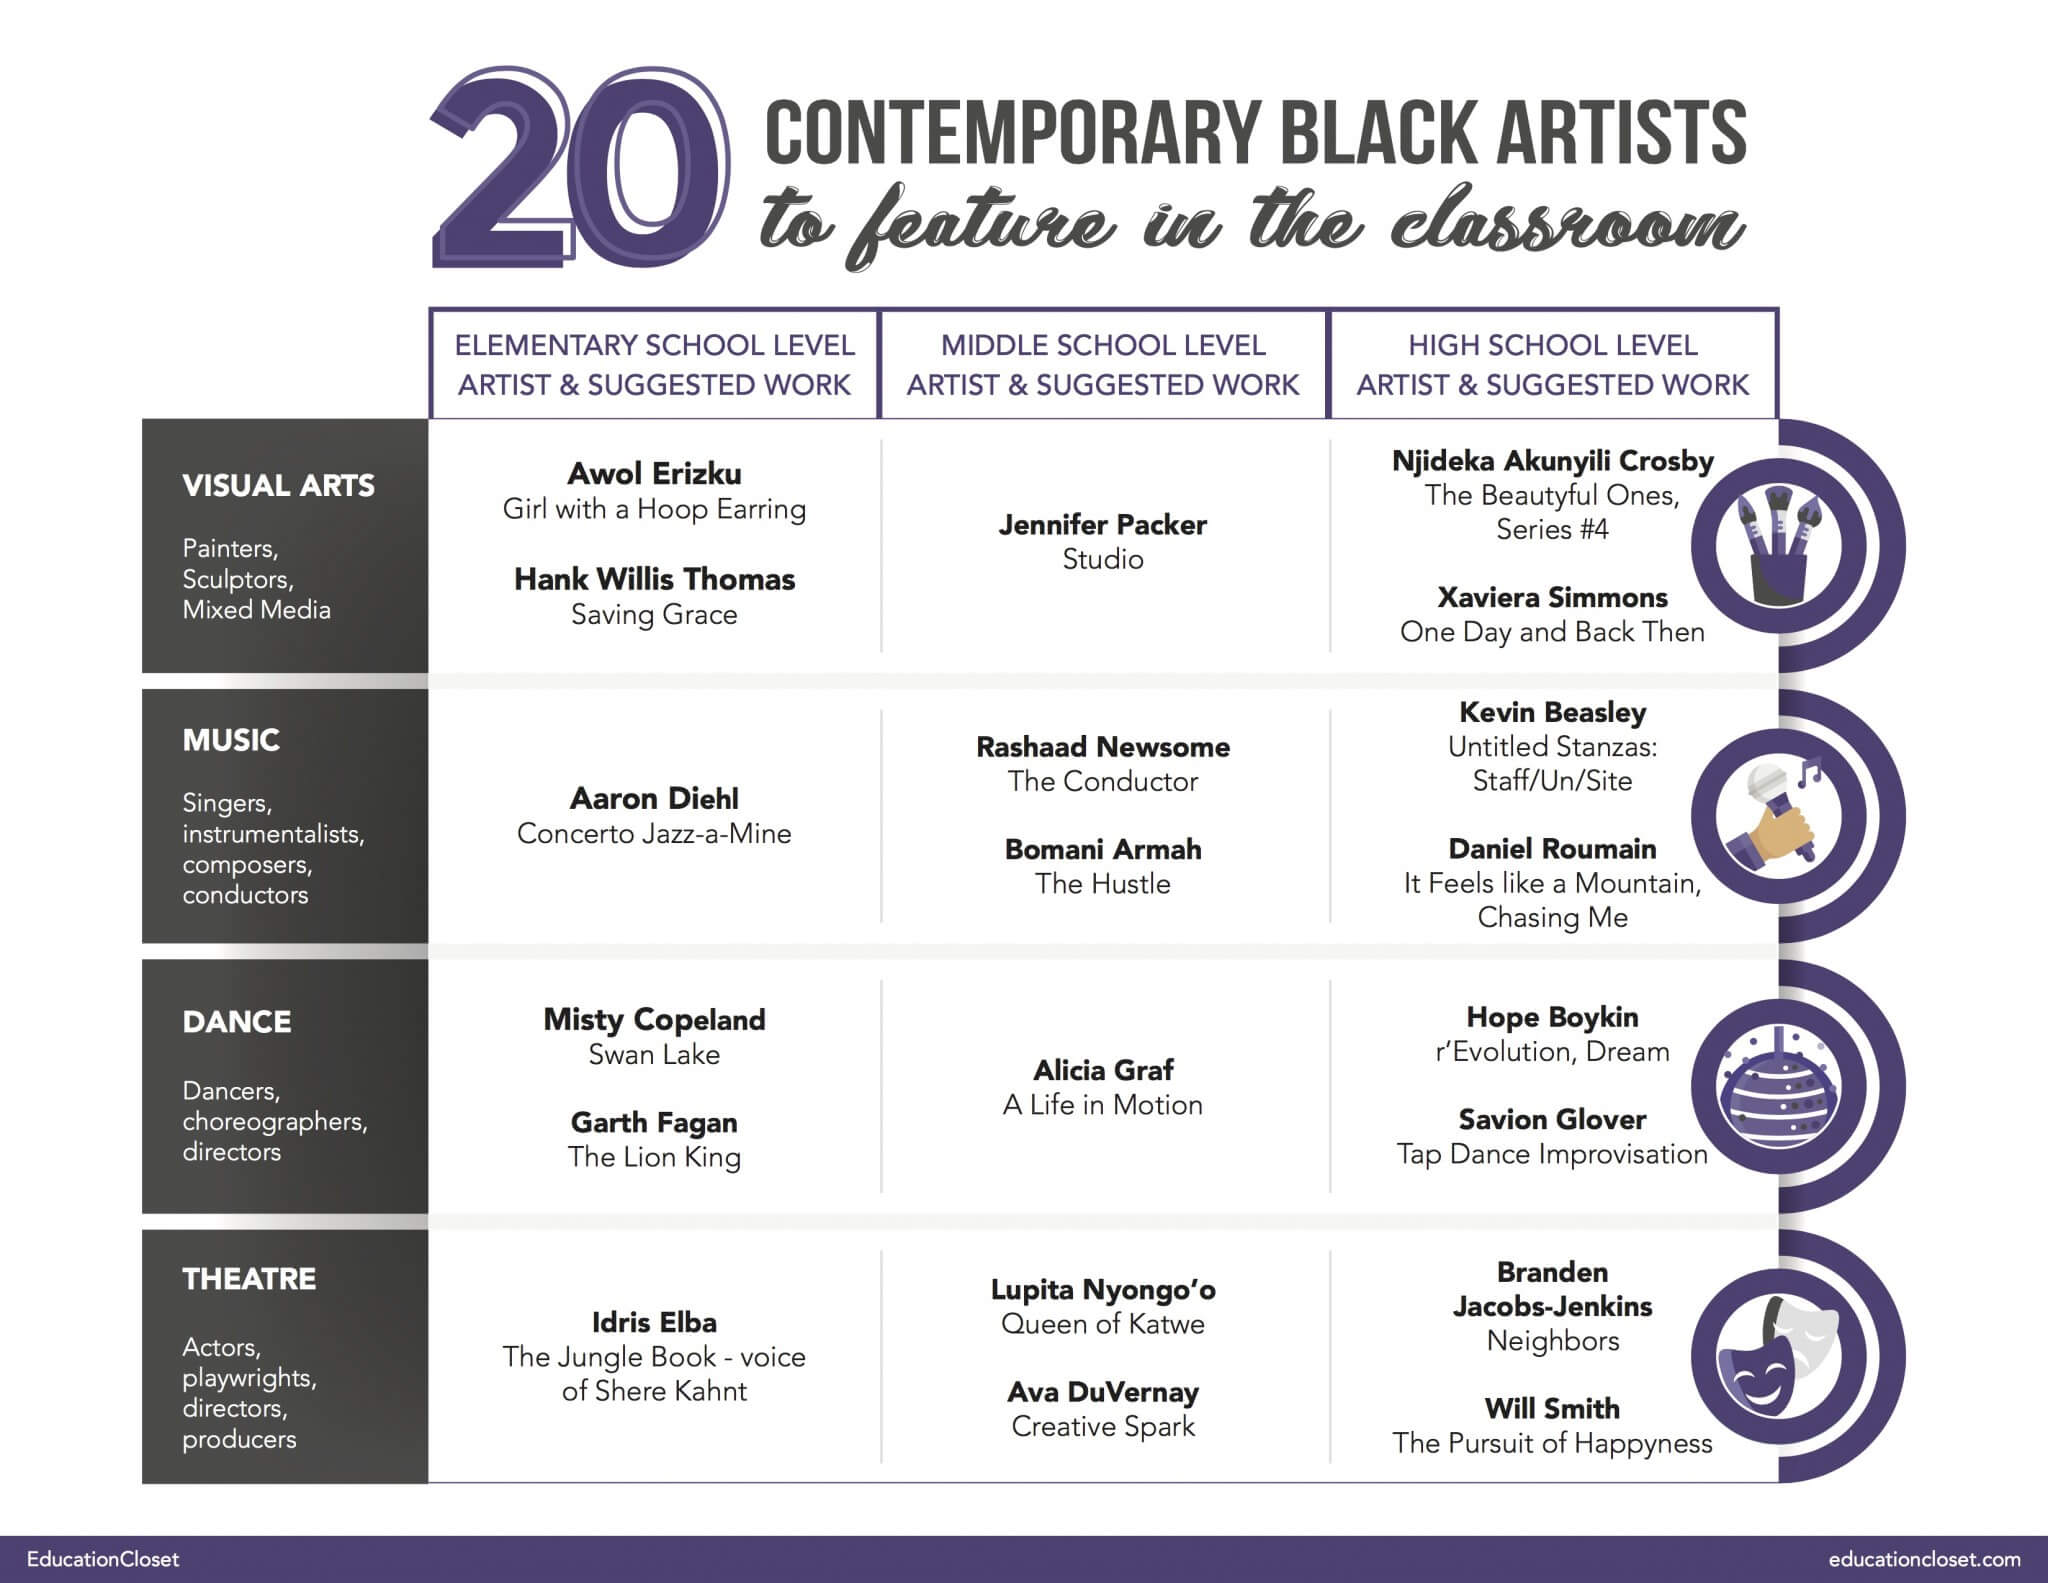 20 Contemporary Black Artists